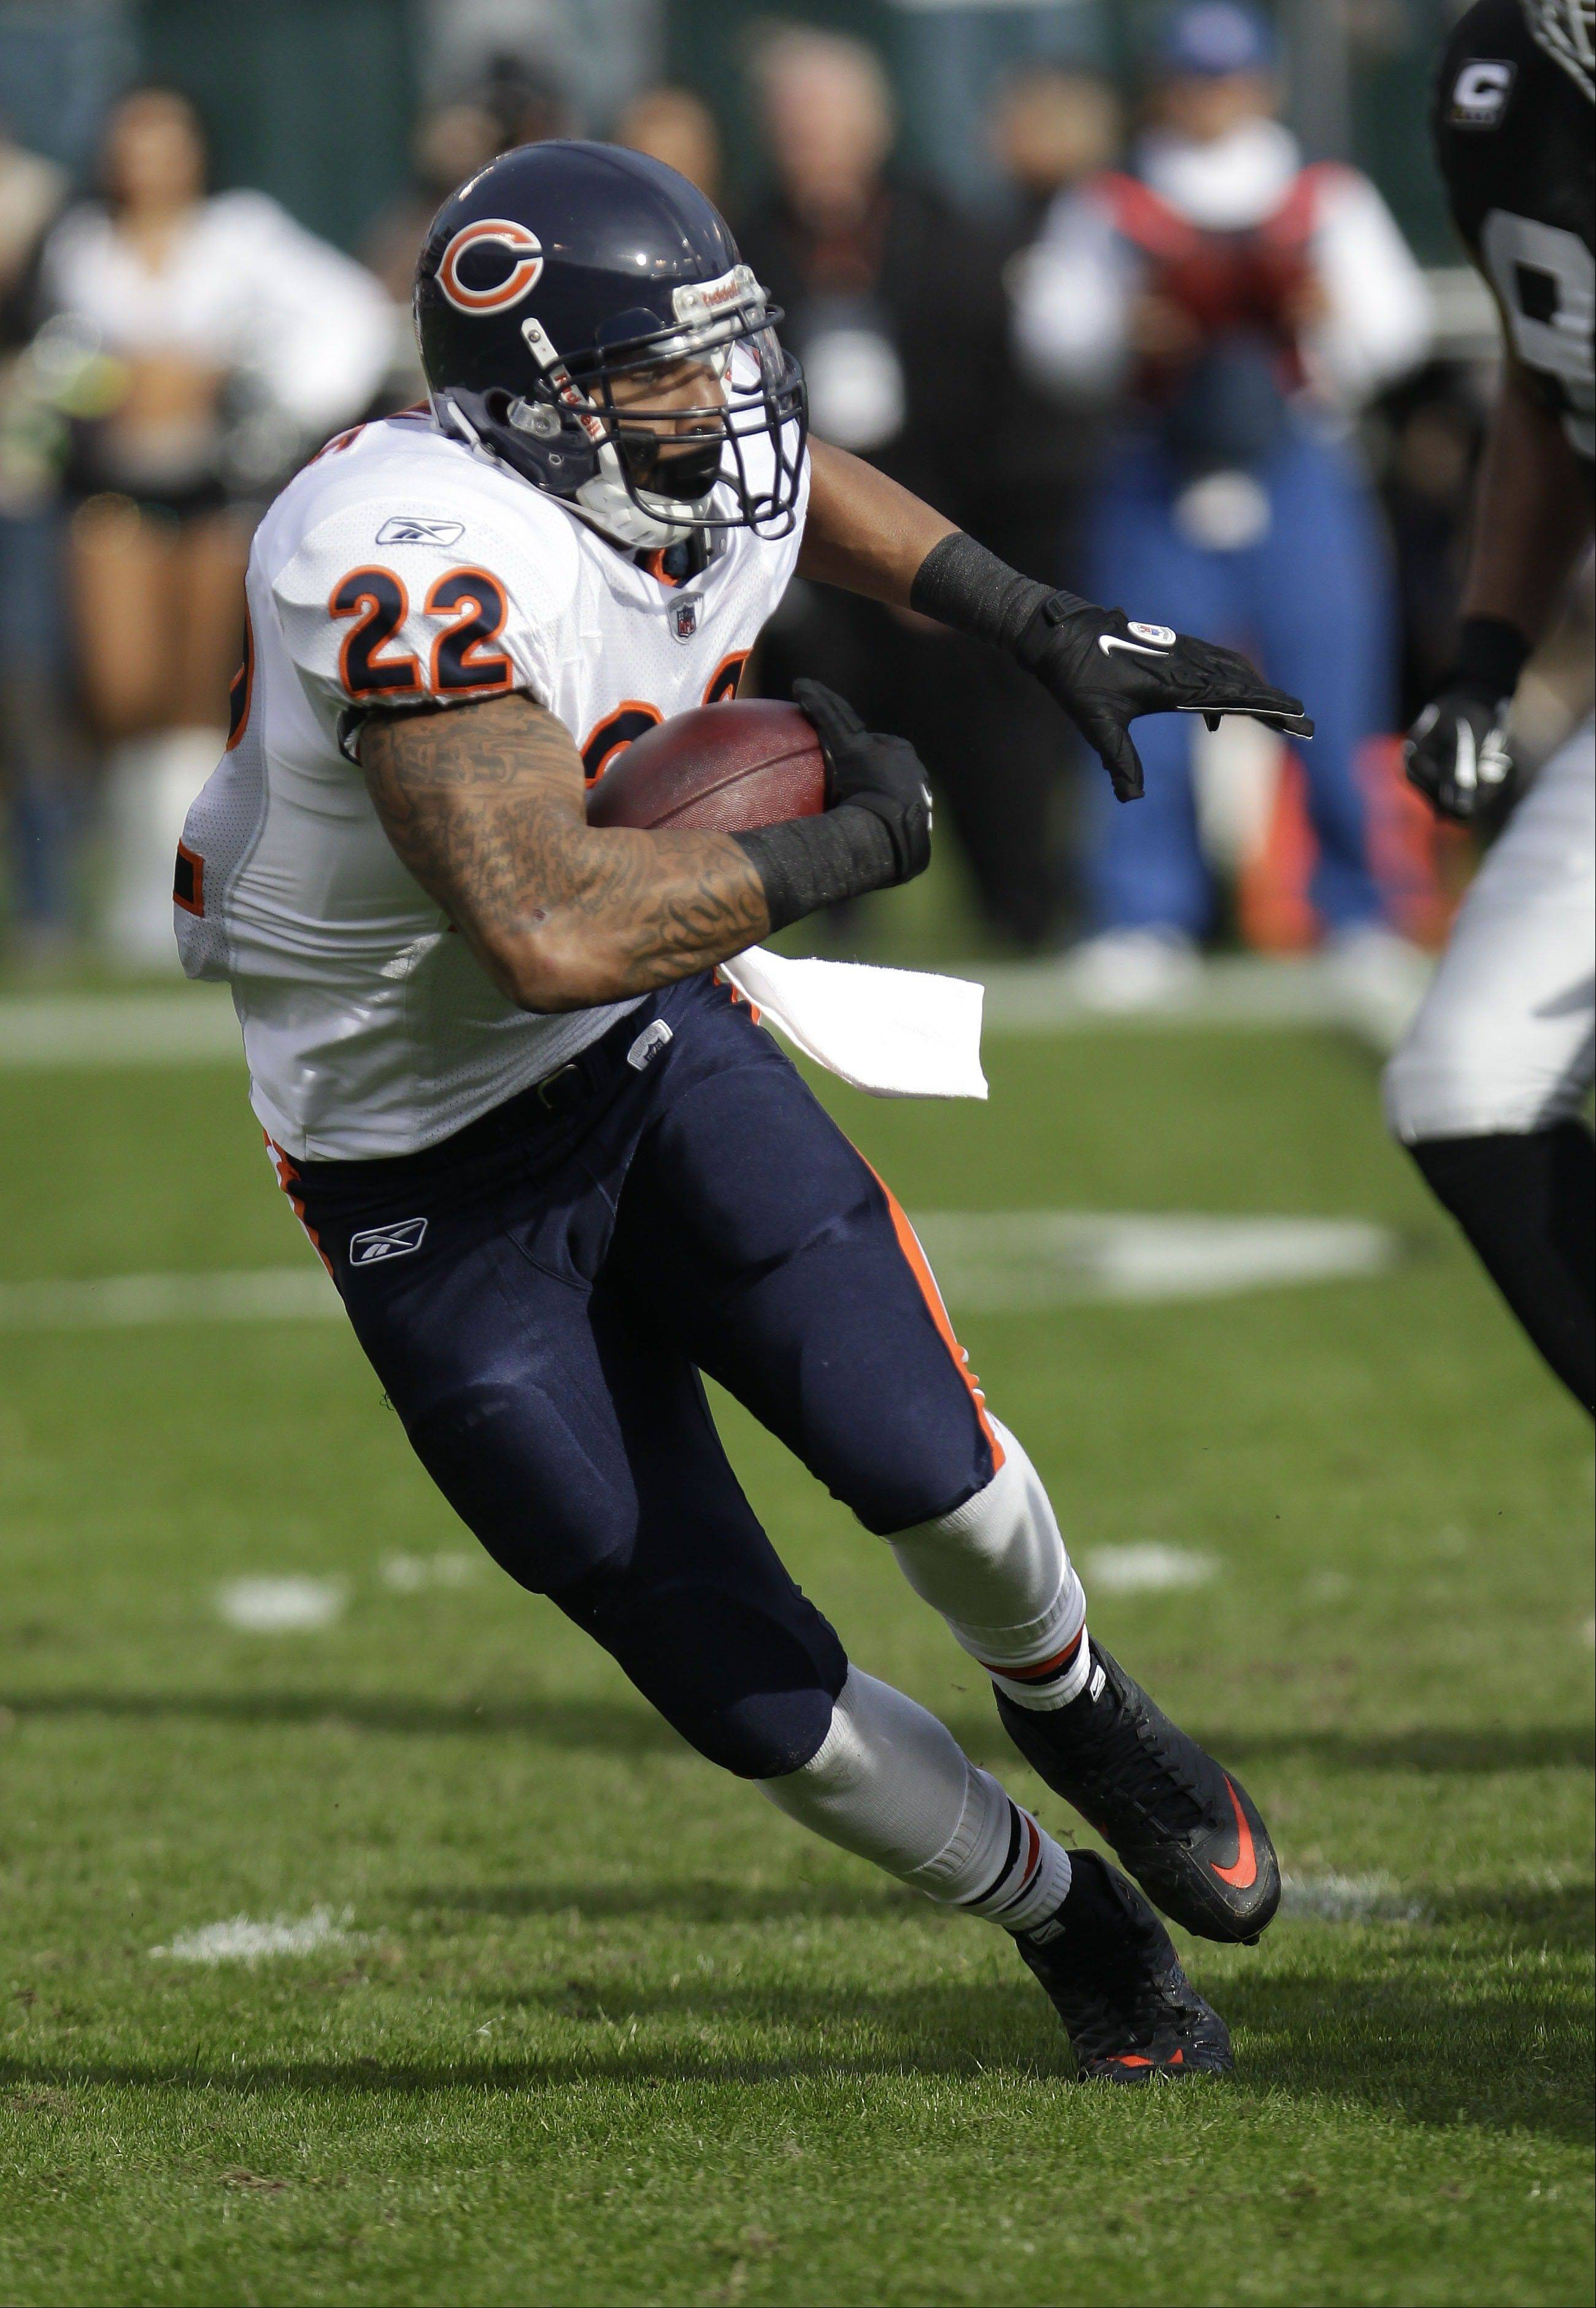 Chicago Bears running back Matt Forte could be feeling the pressure with quarterback Jay Cutler out for at least three weeks. Forte is seventh in the NFL with 533 rushing yeards and he�s averaging 21.6 touches per game.